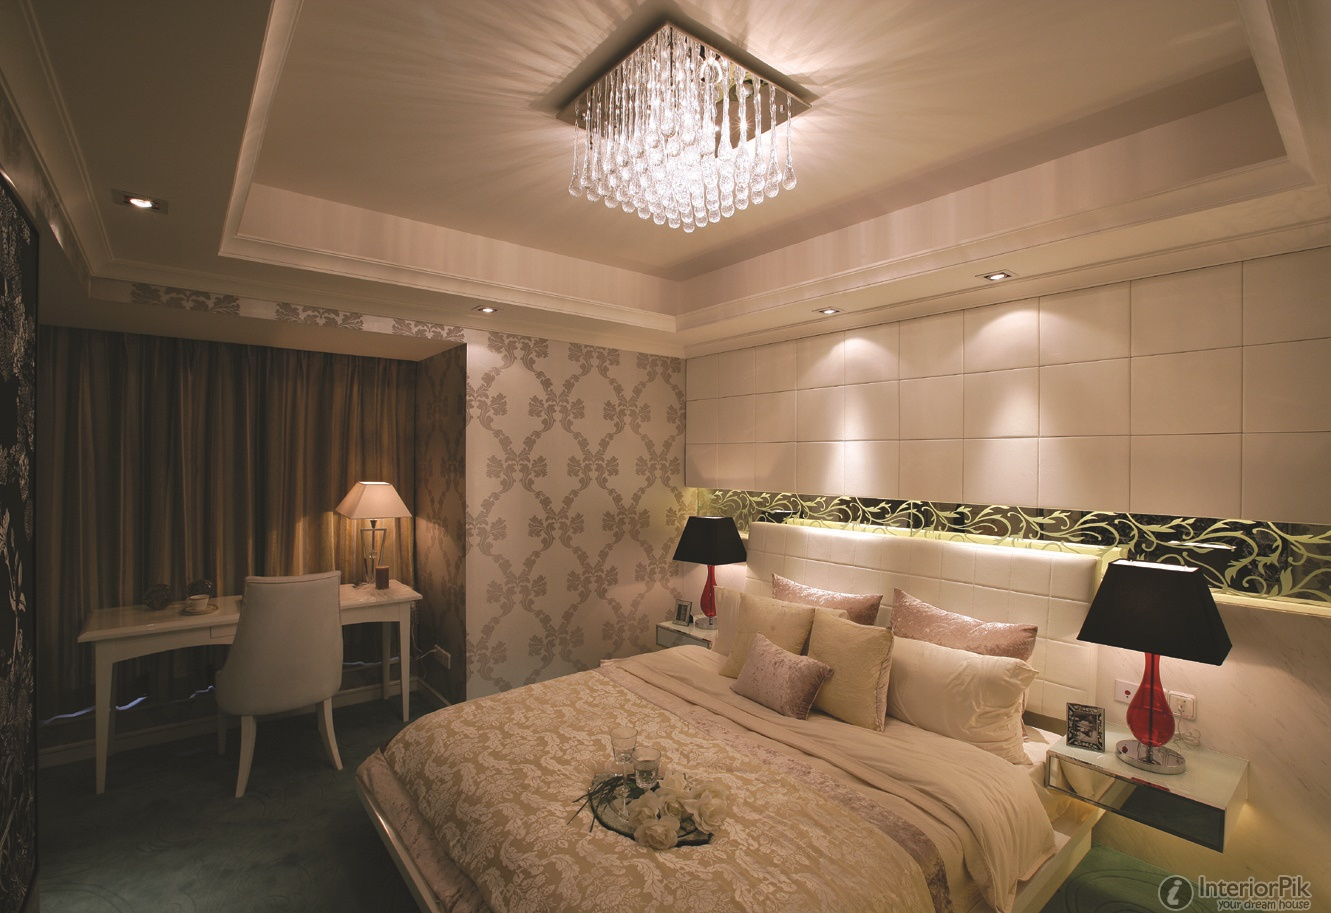 lighting  Lighting For Bedroom Ceiling Mhsa For Ceiling Ideas Lights. Ceiling Lights For Bedroom Modern